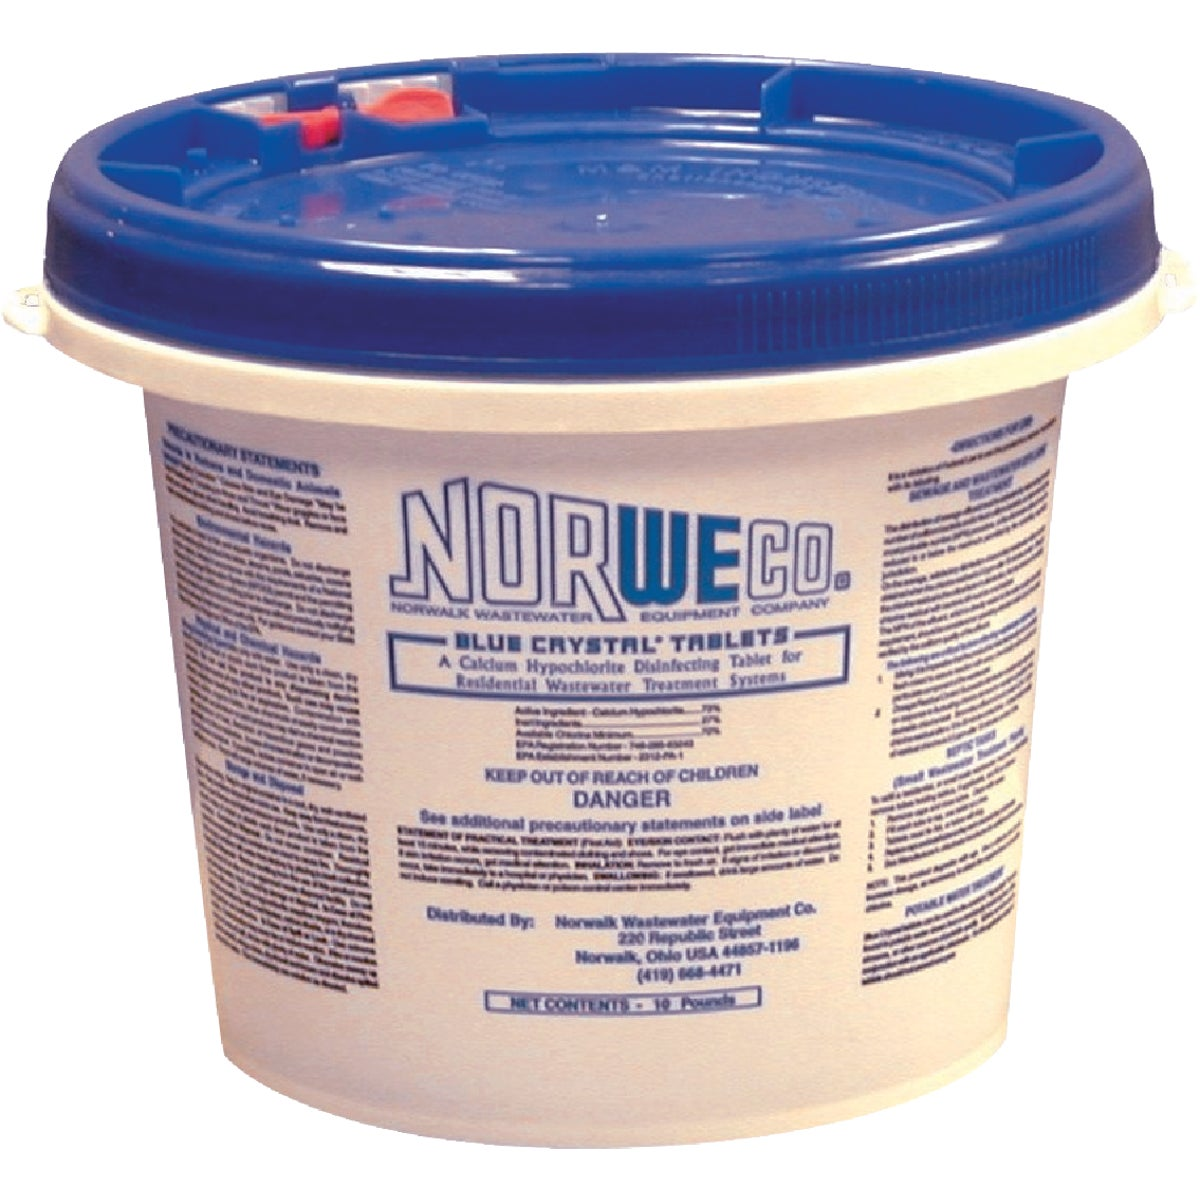 10# SEWER L BLUE CRYSTAL - FSB50009 by Norweco Inc